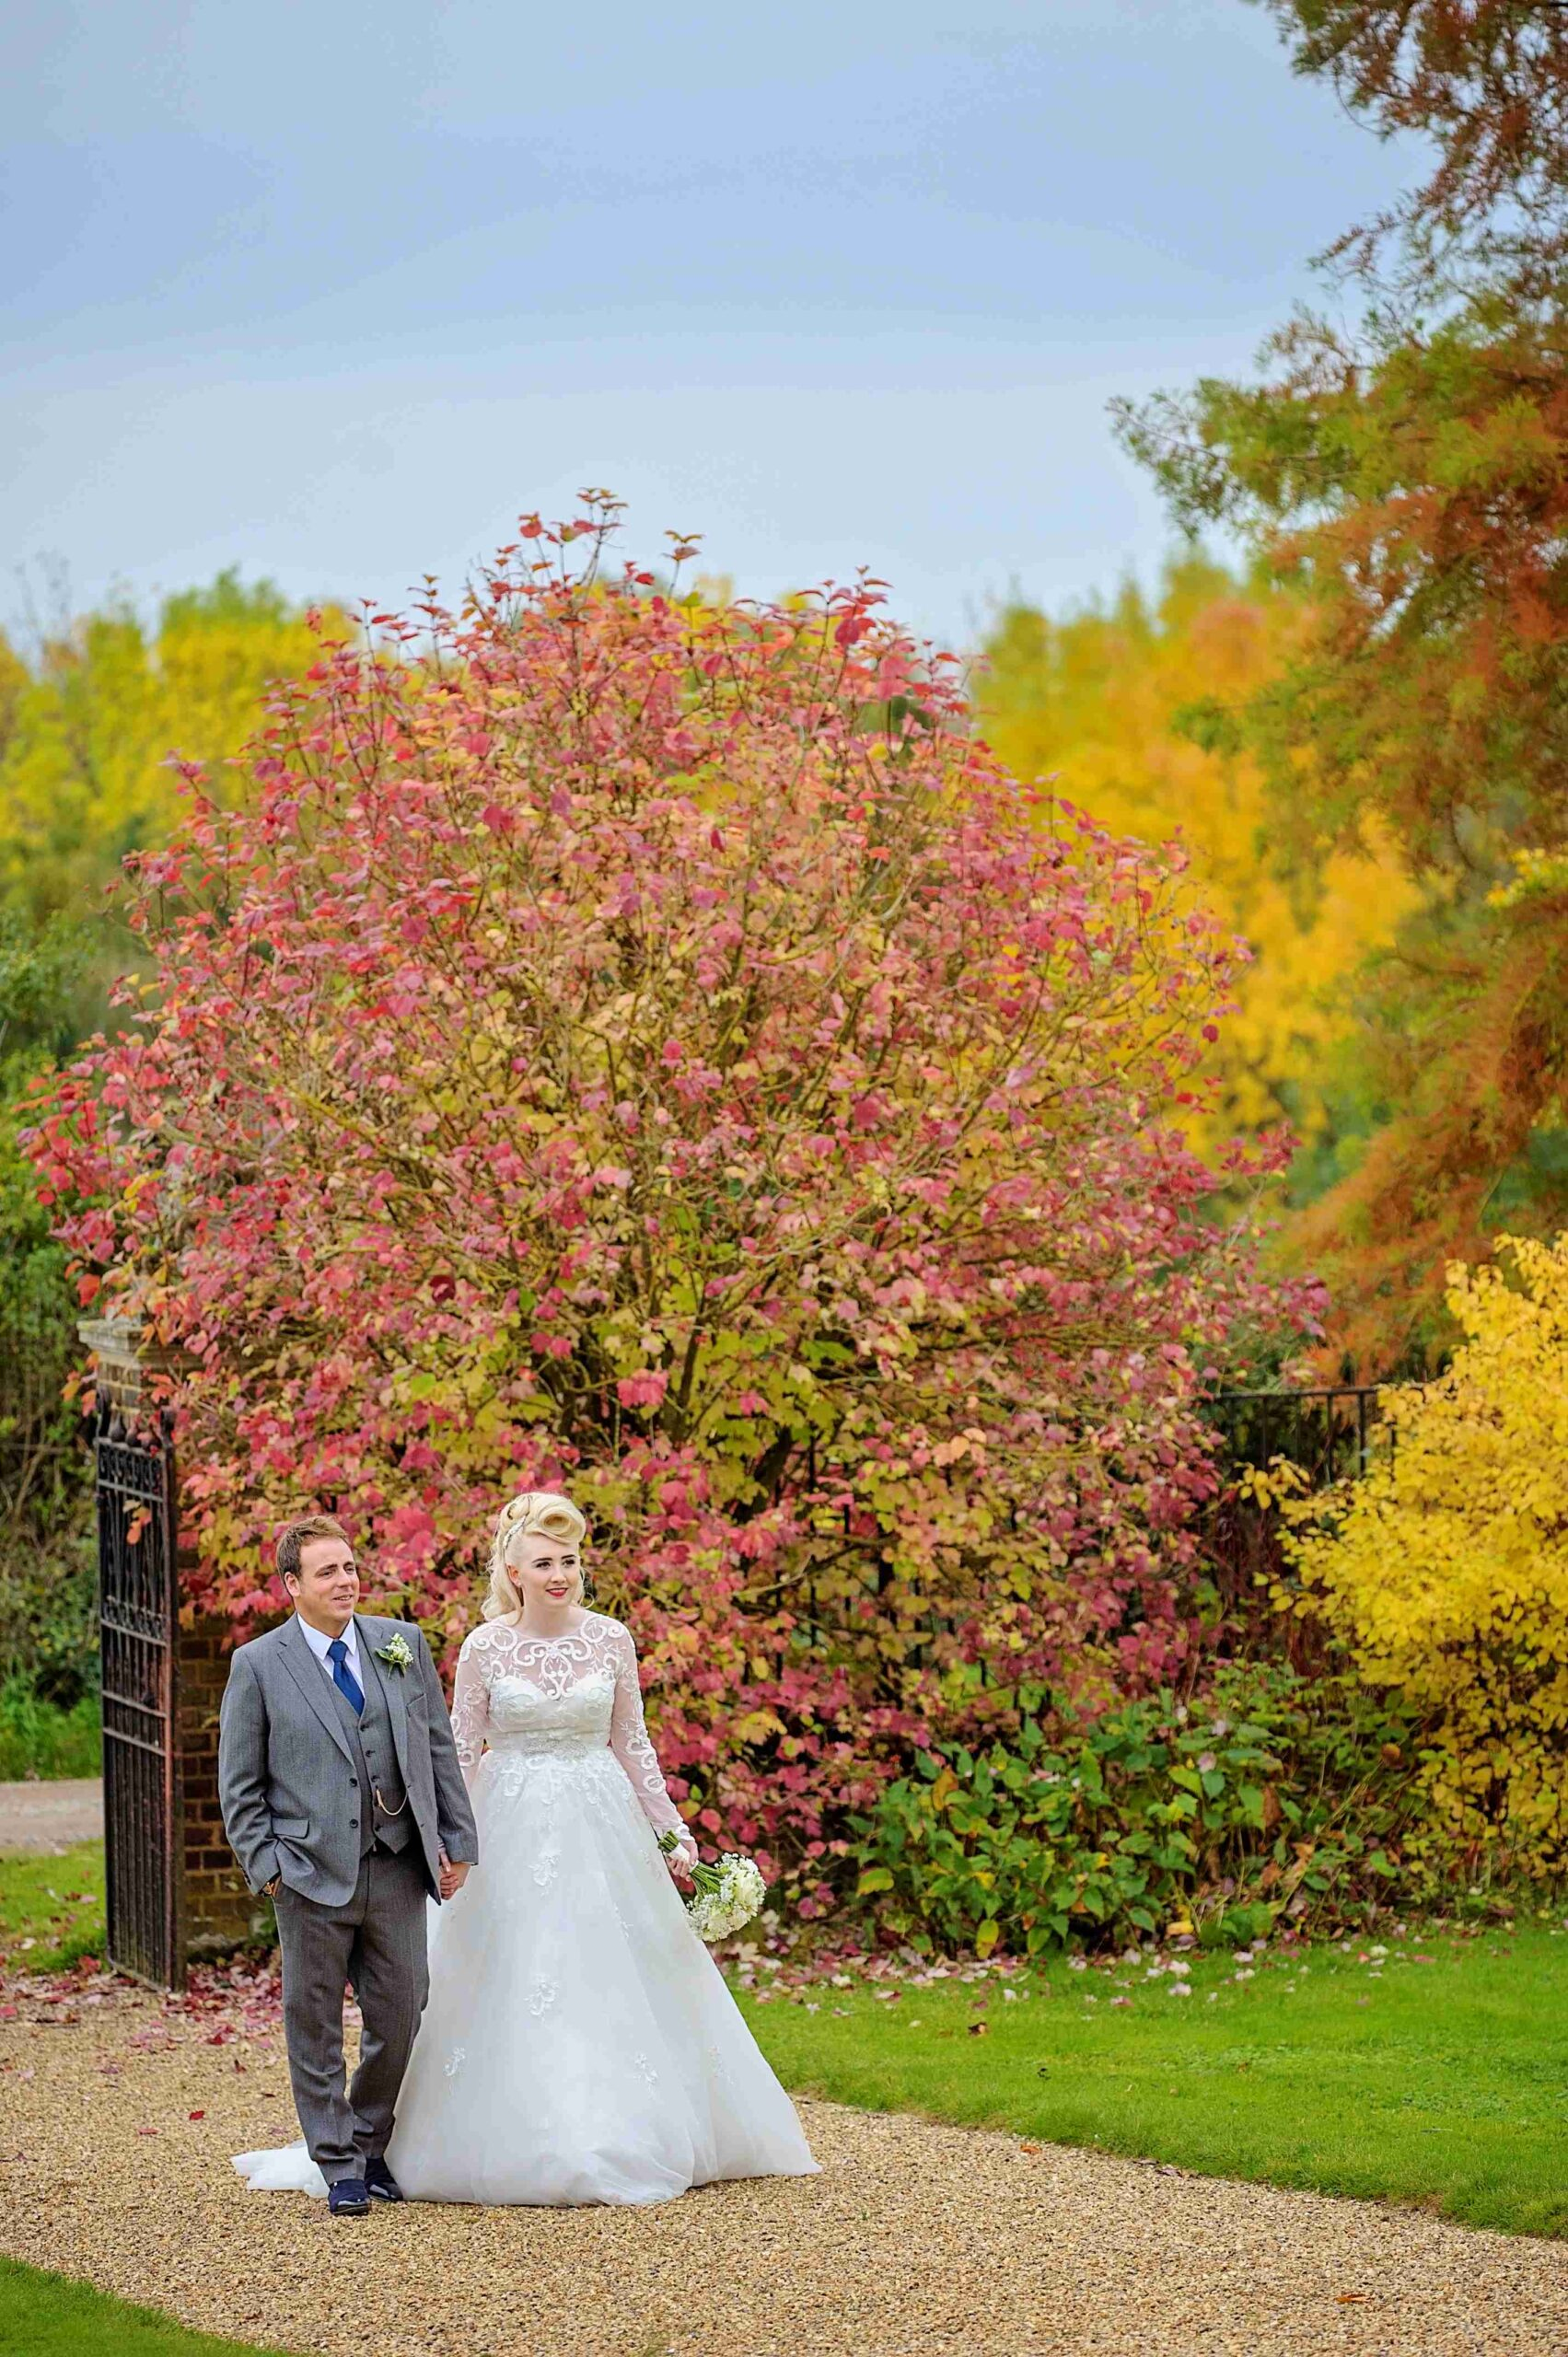 Autumn garden, bride and groom